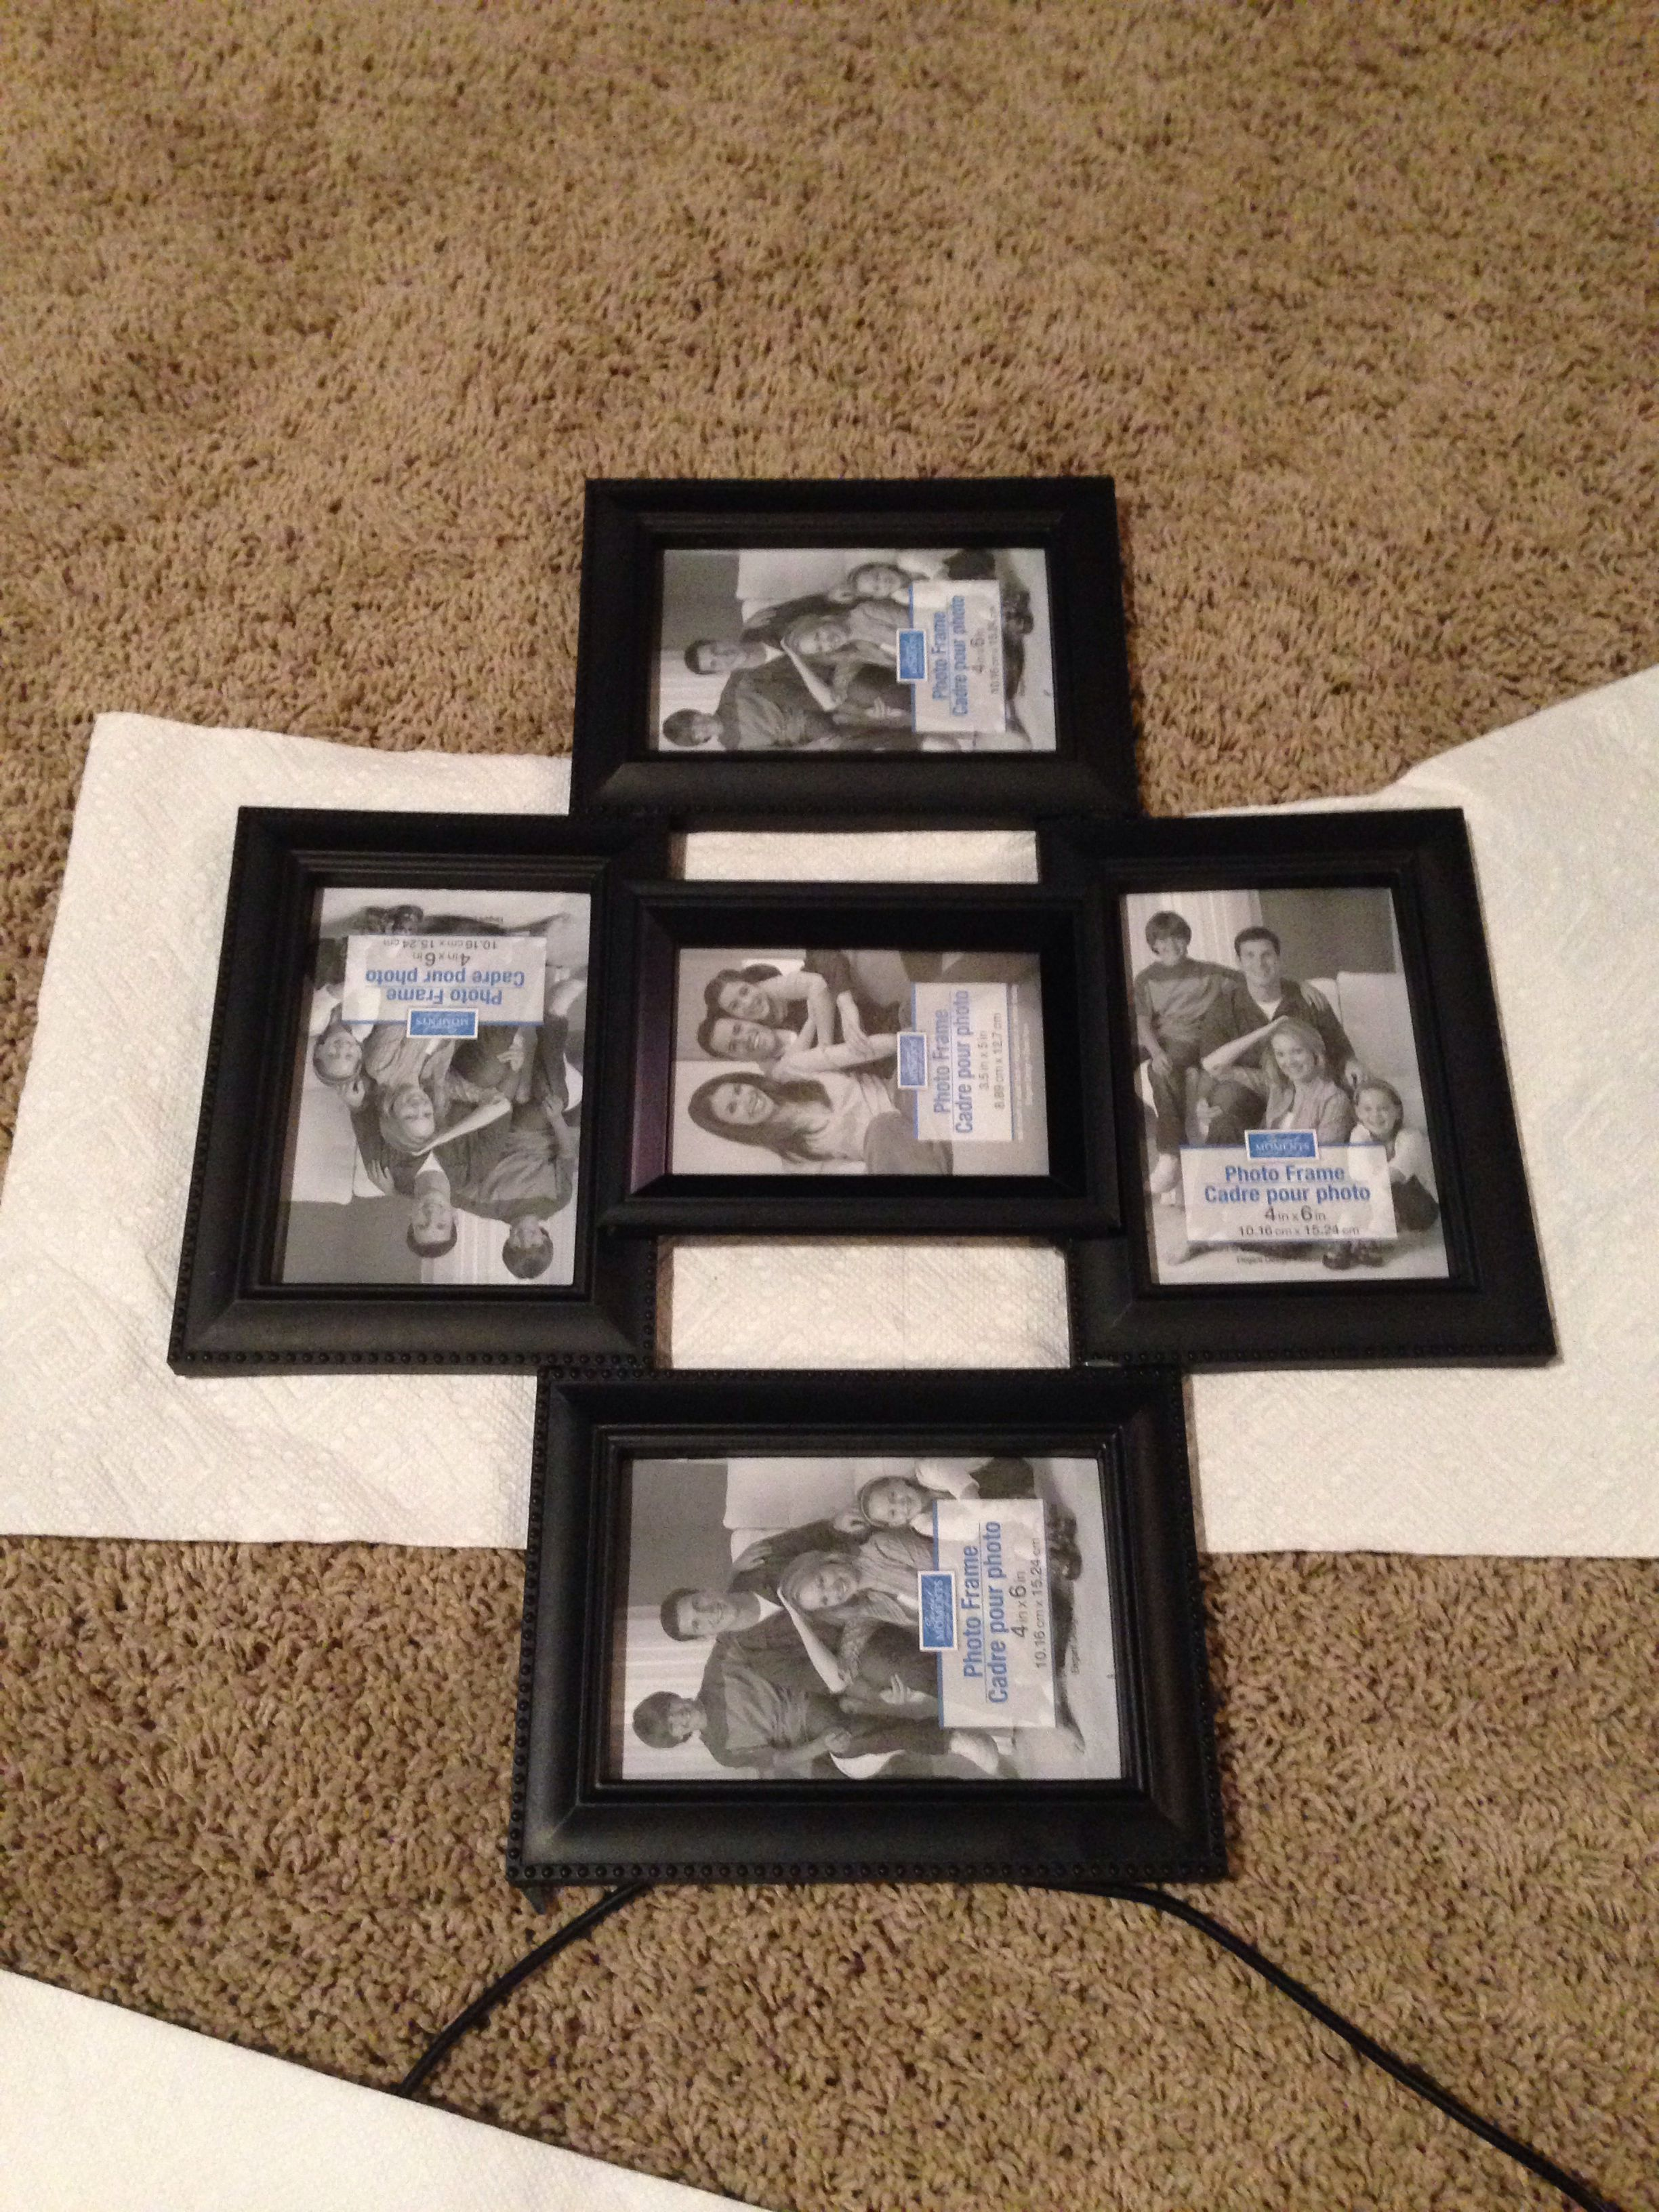 Montage Photo Cadre Multiple Diy Collage Frame Get Dollar Store Frames And Hot Glue Them